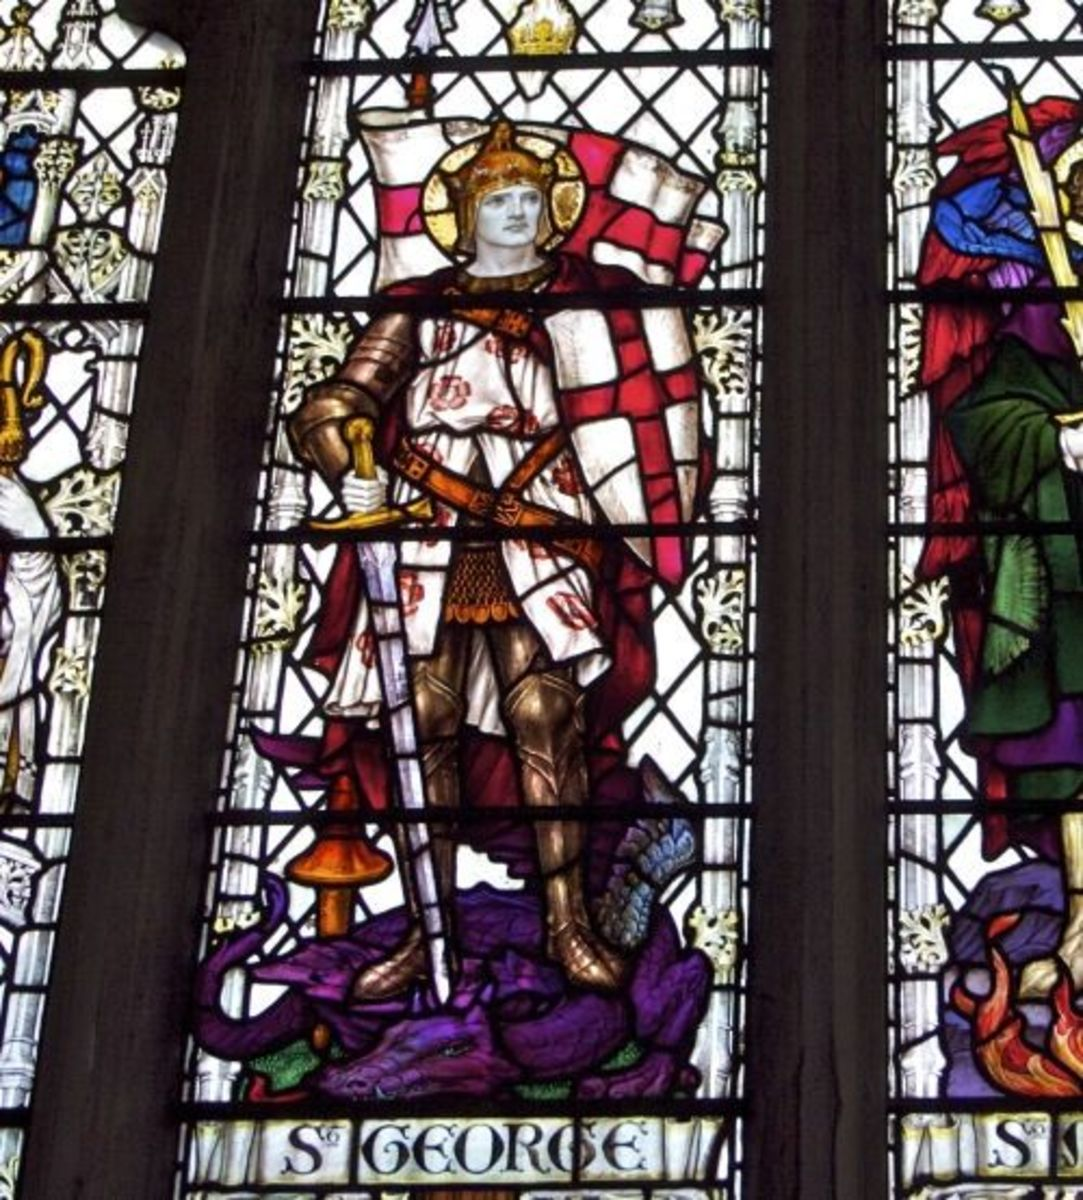 St George, the Patron Saint of England - stained glass at a church in Salisbury, England showing detail of St George